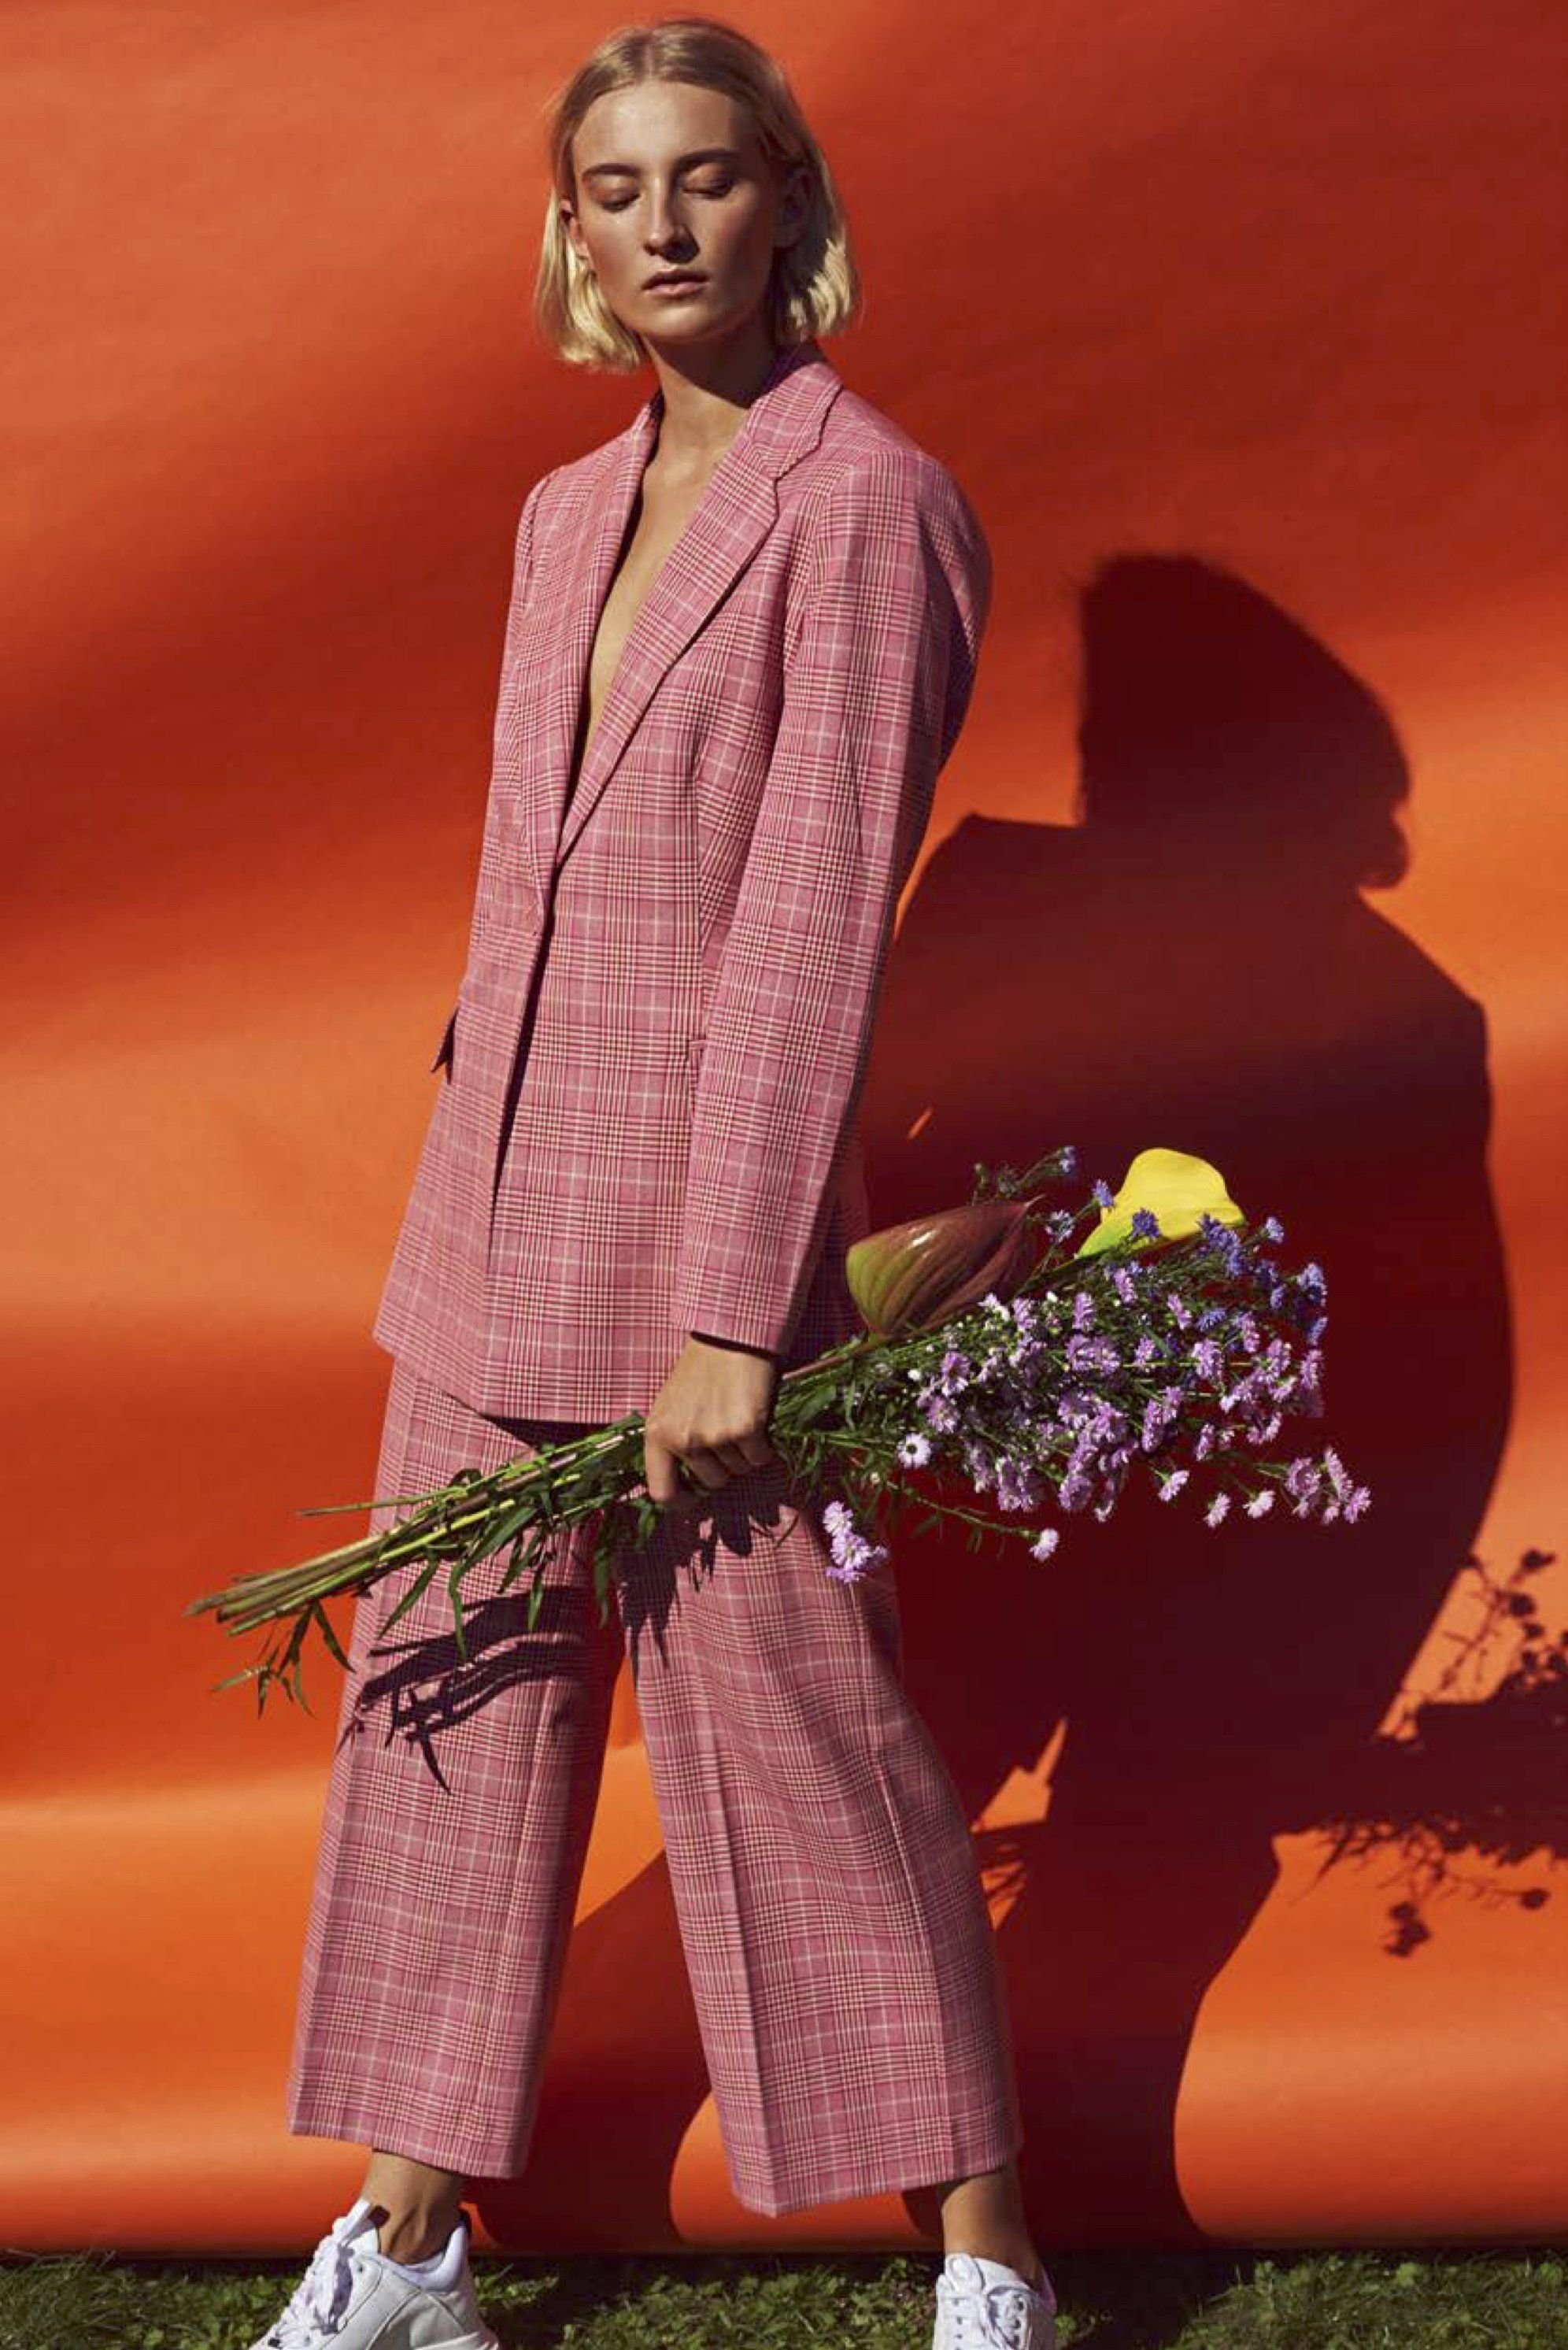 Just Female Maxime oversized blazer pink rose check matching set, menswear inspired, 70's pantsuit, modern   Pipe and Row   www.pipeandrow.com #pipeandrow #notyouraveragestaple #seattle #shopsmall #createtheculture #70sstyle #matchingsets #pantsuits #yourlocalgirlgang #localgirlgang #capsulecloset #danishstyle #danishstreetstyle #Scandinavianstyle #scandinavianstreetstyle #justfemale danish style, danish street style, Scandinavian style, scandinavian streetstyle, scandinavian fashion